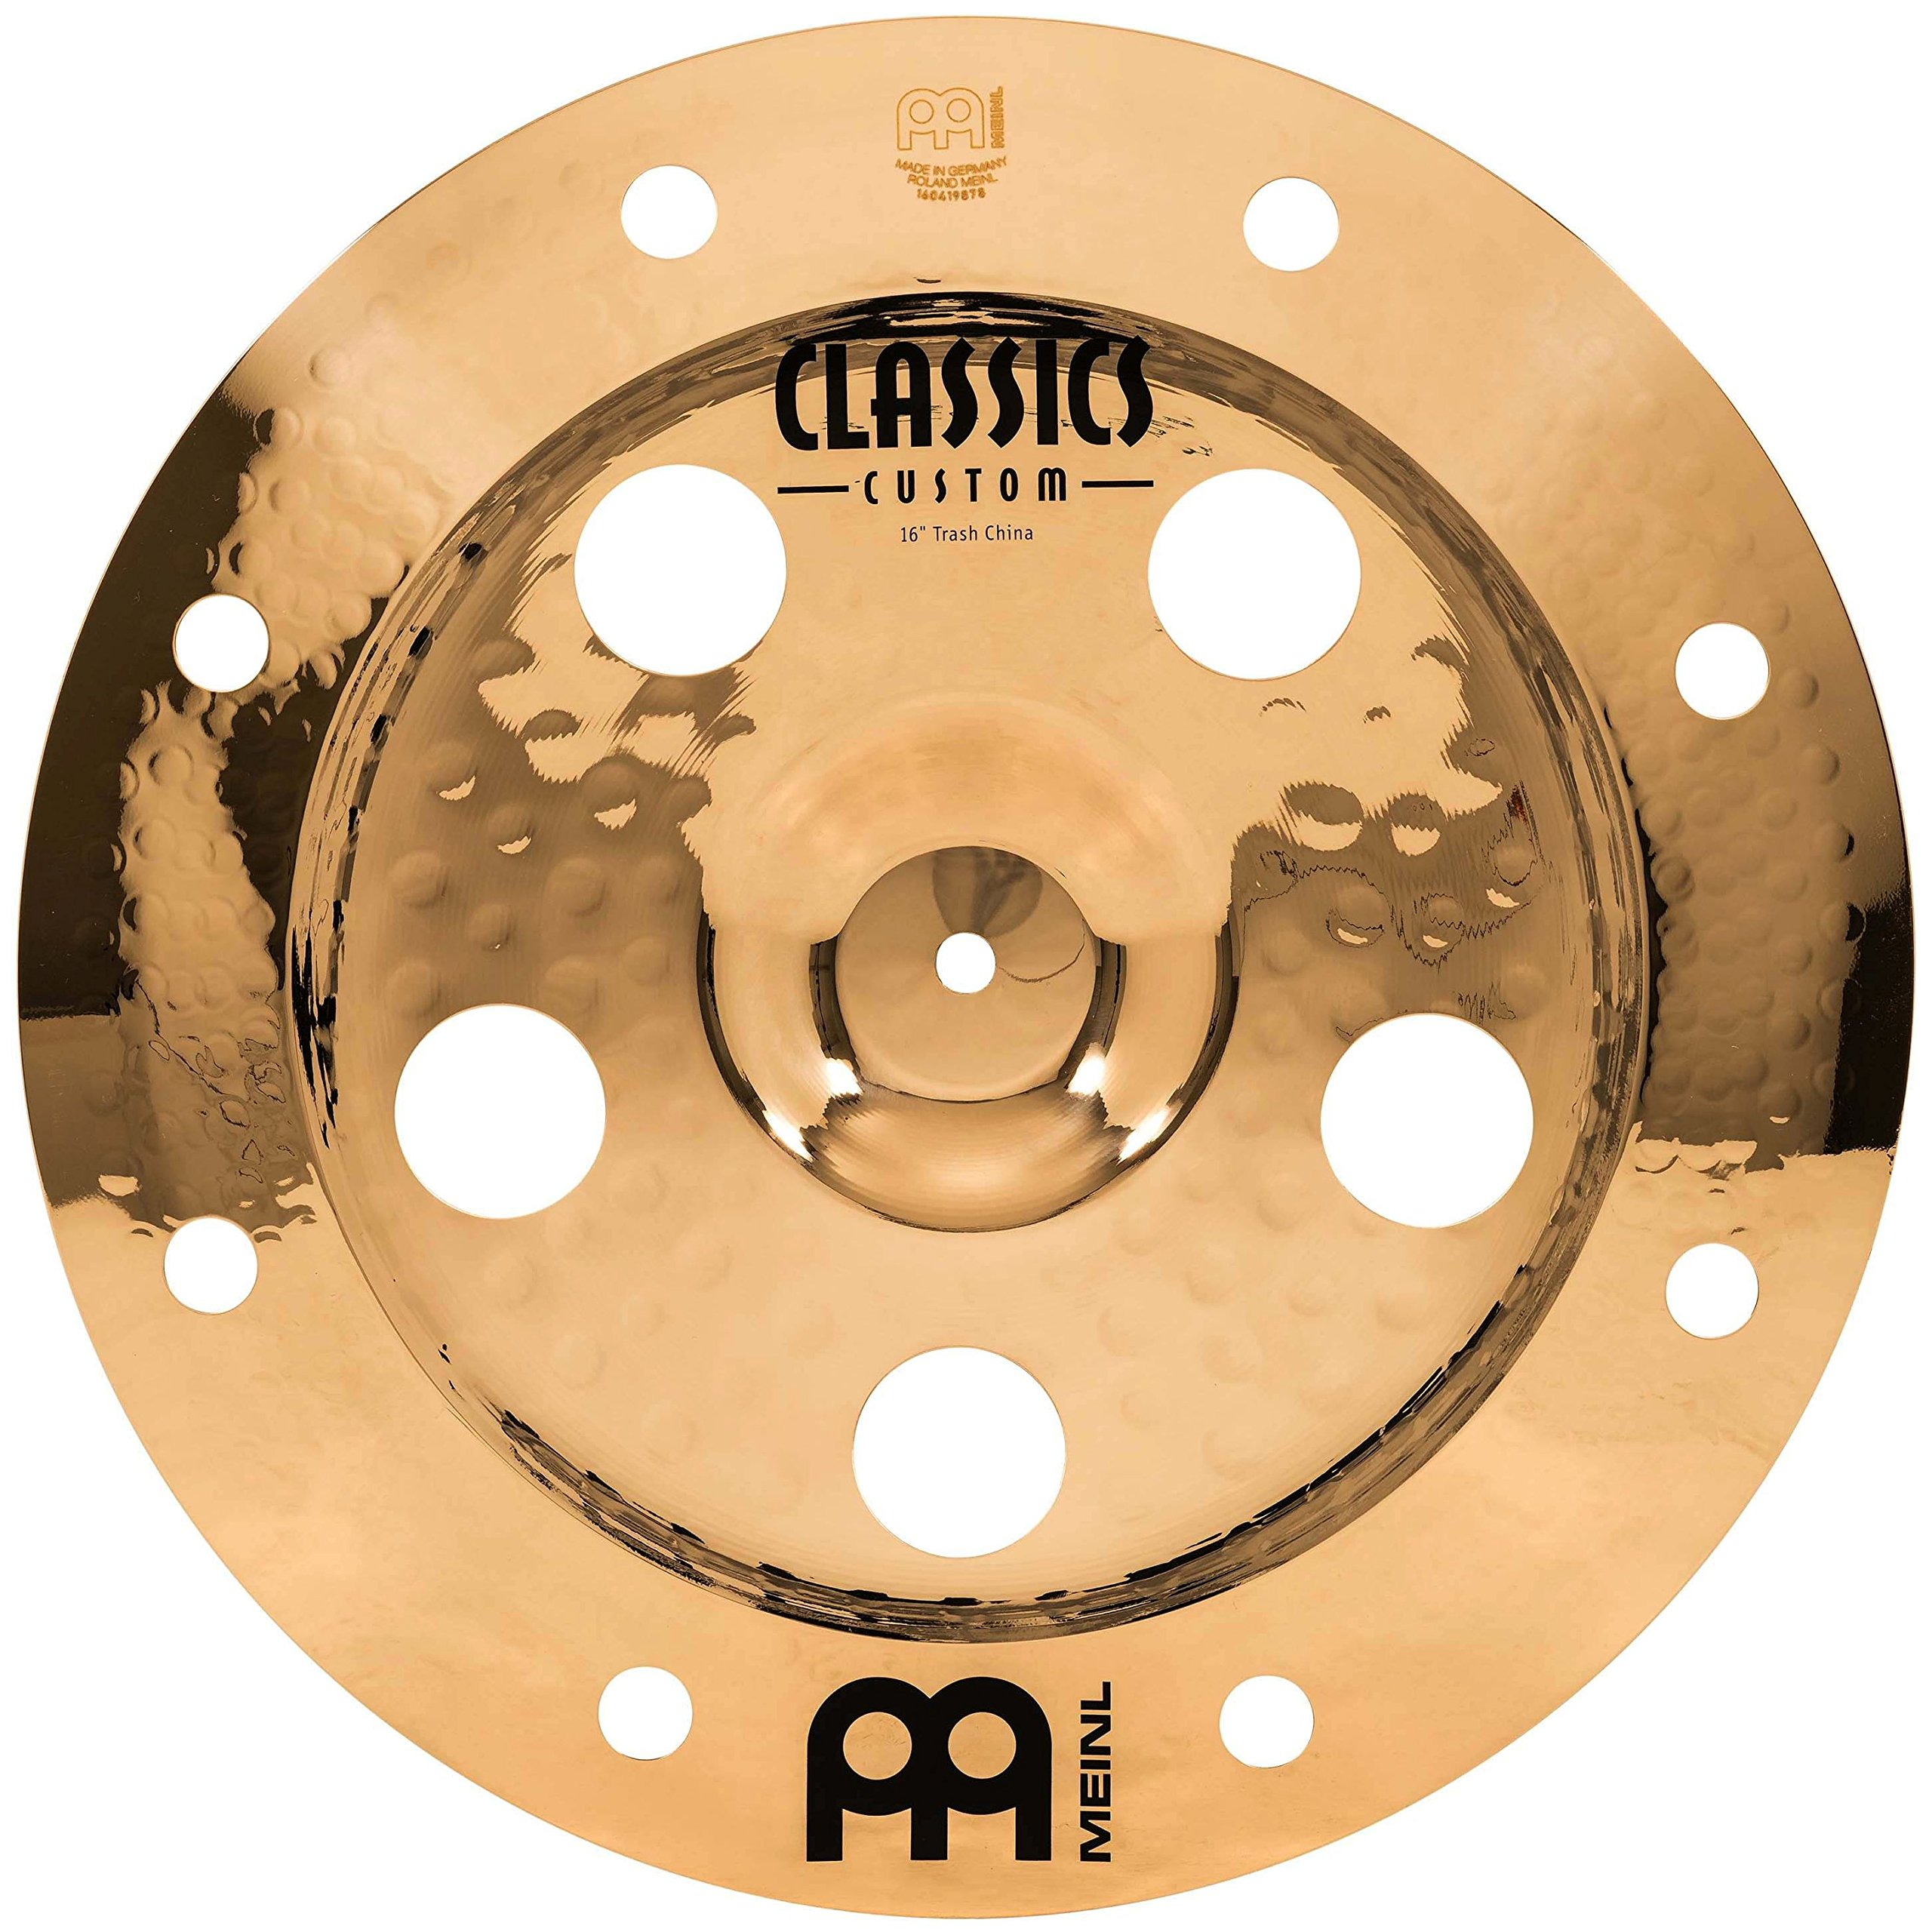 Meinl 16'' Trash China Cymbal with Holes - Classics Custom Brilliant - Made In Germany, 2-YEAR WARRANTY (CC16TRCH-B) by Meinl Cymbals